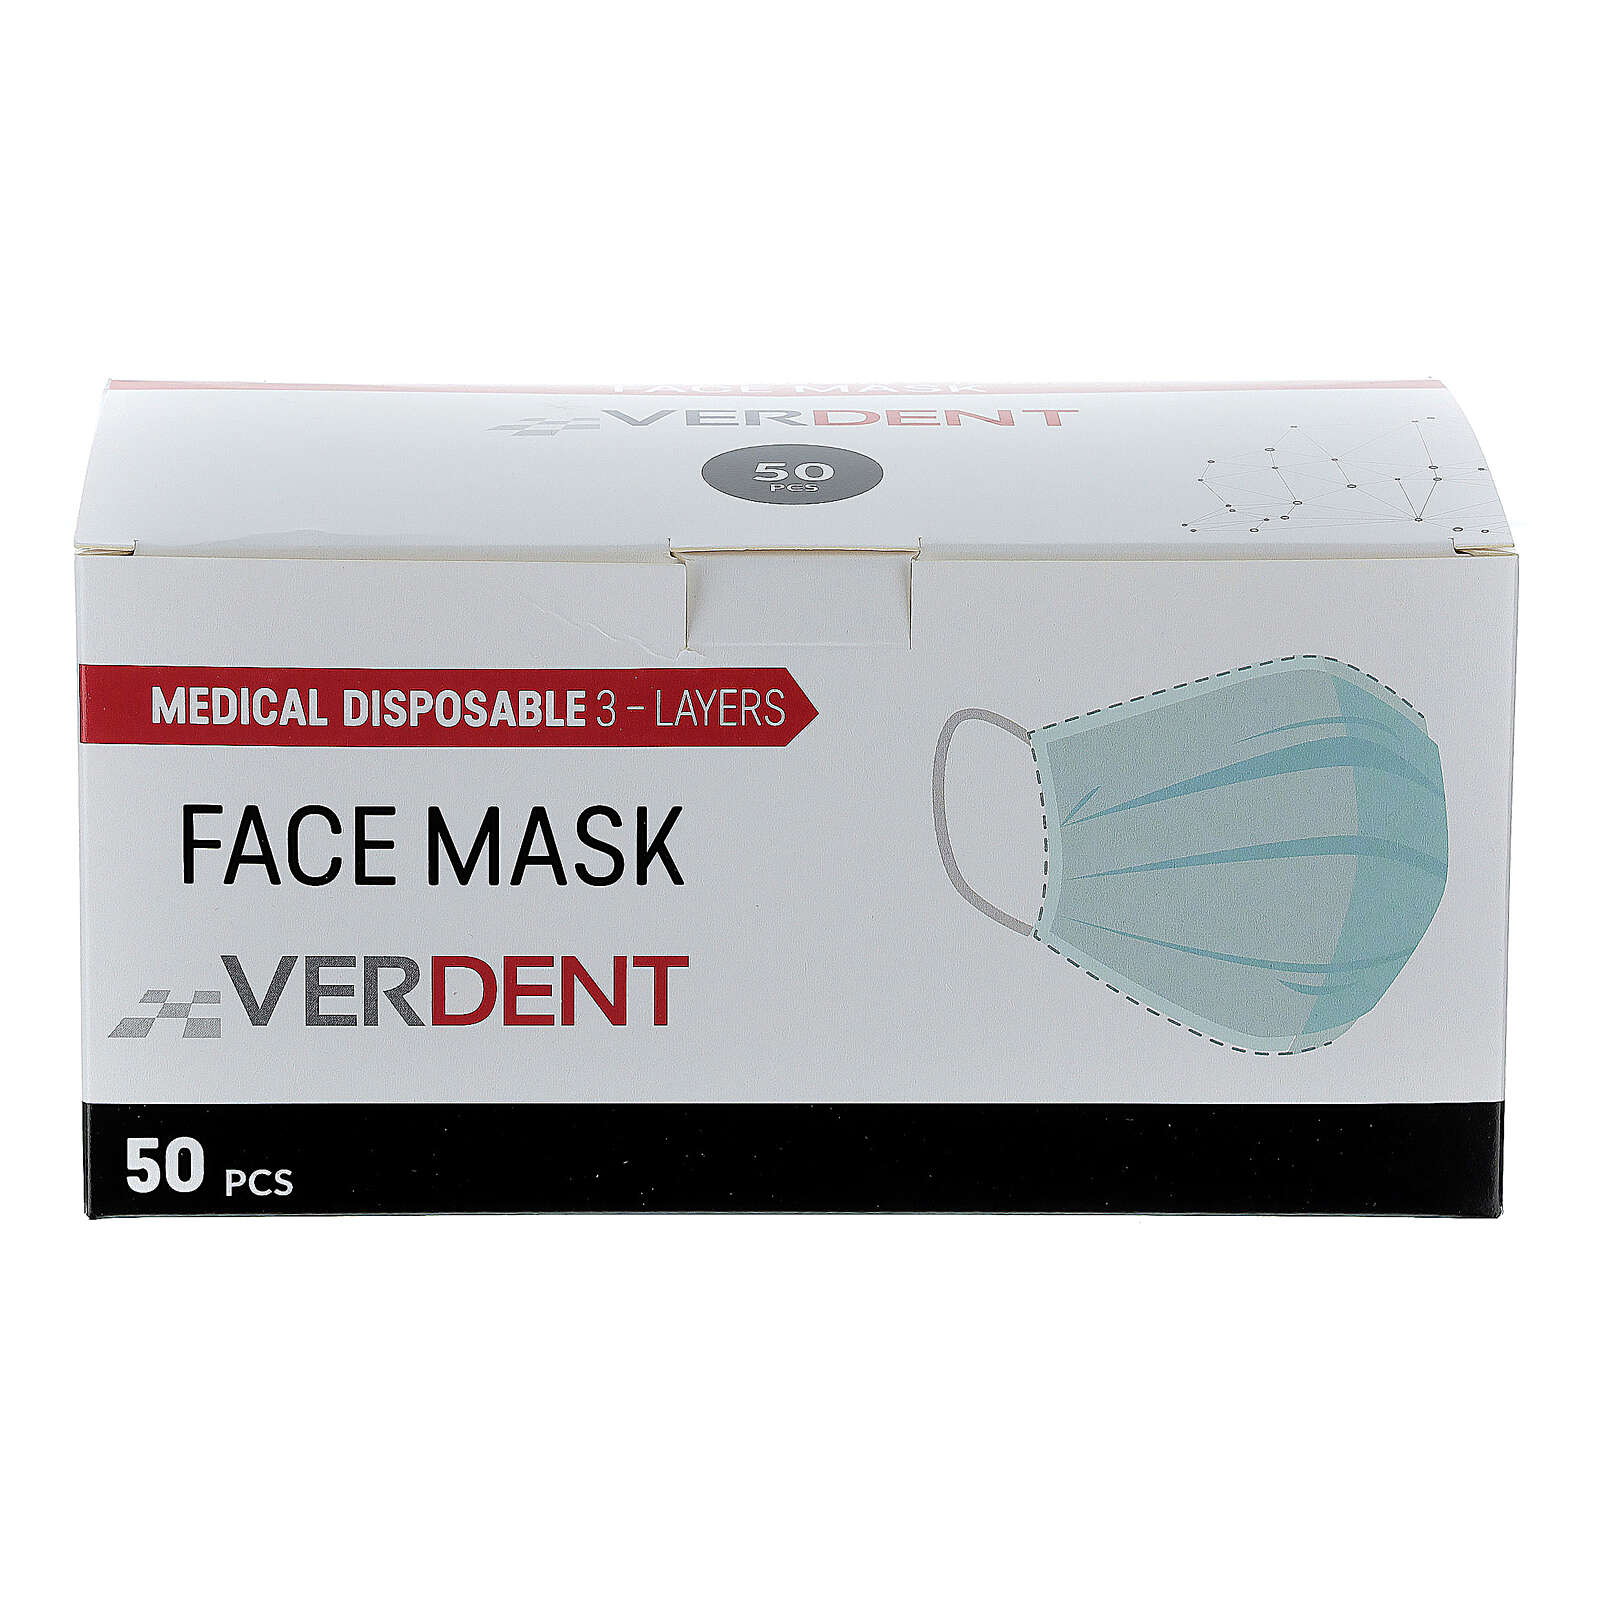 Surgical face mask single-use Type IIR 3